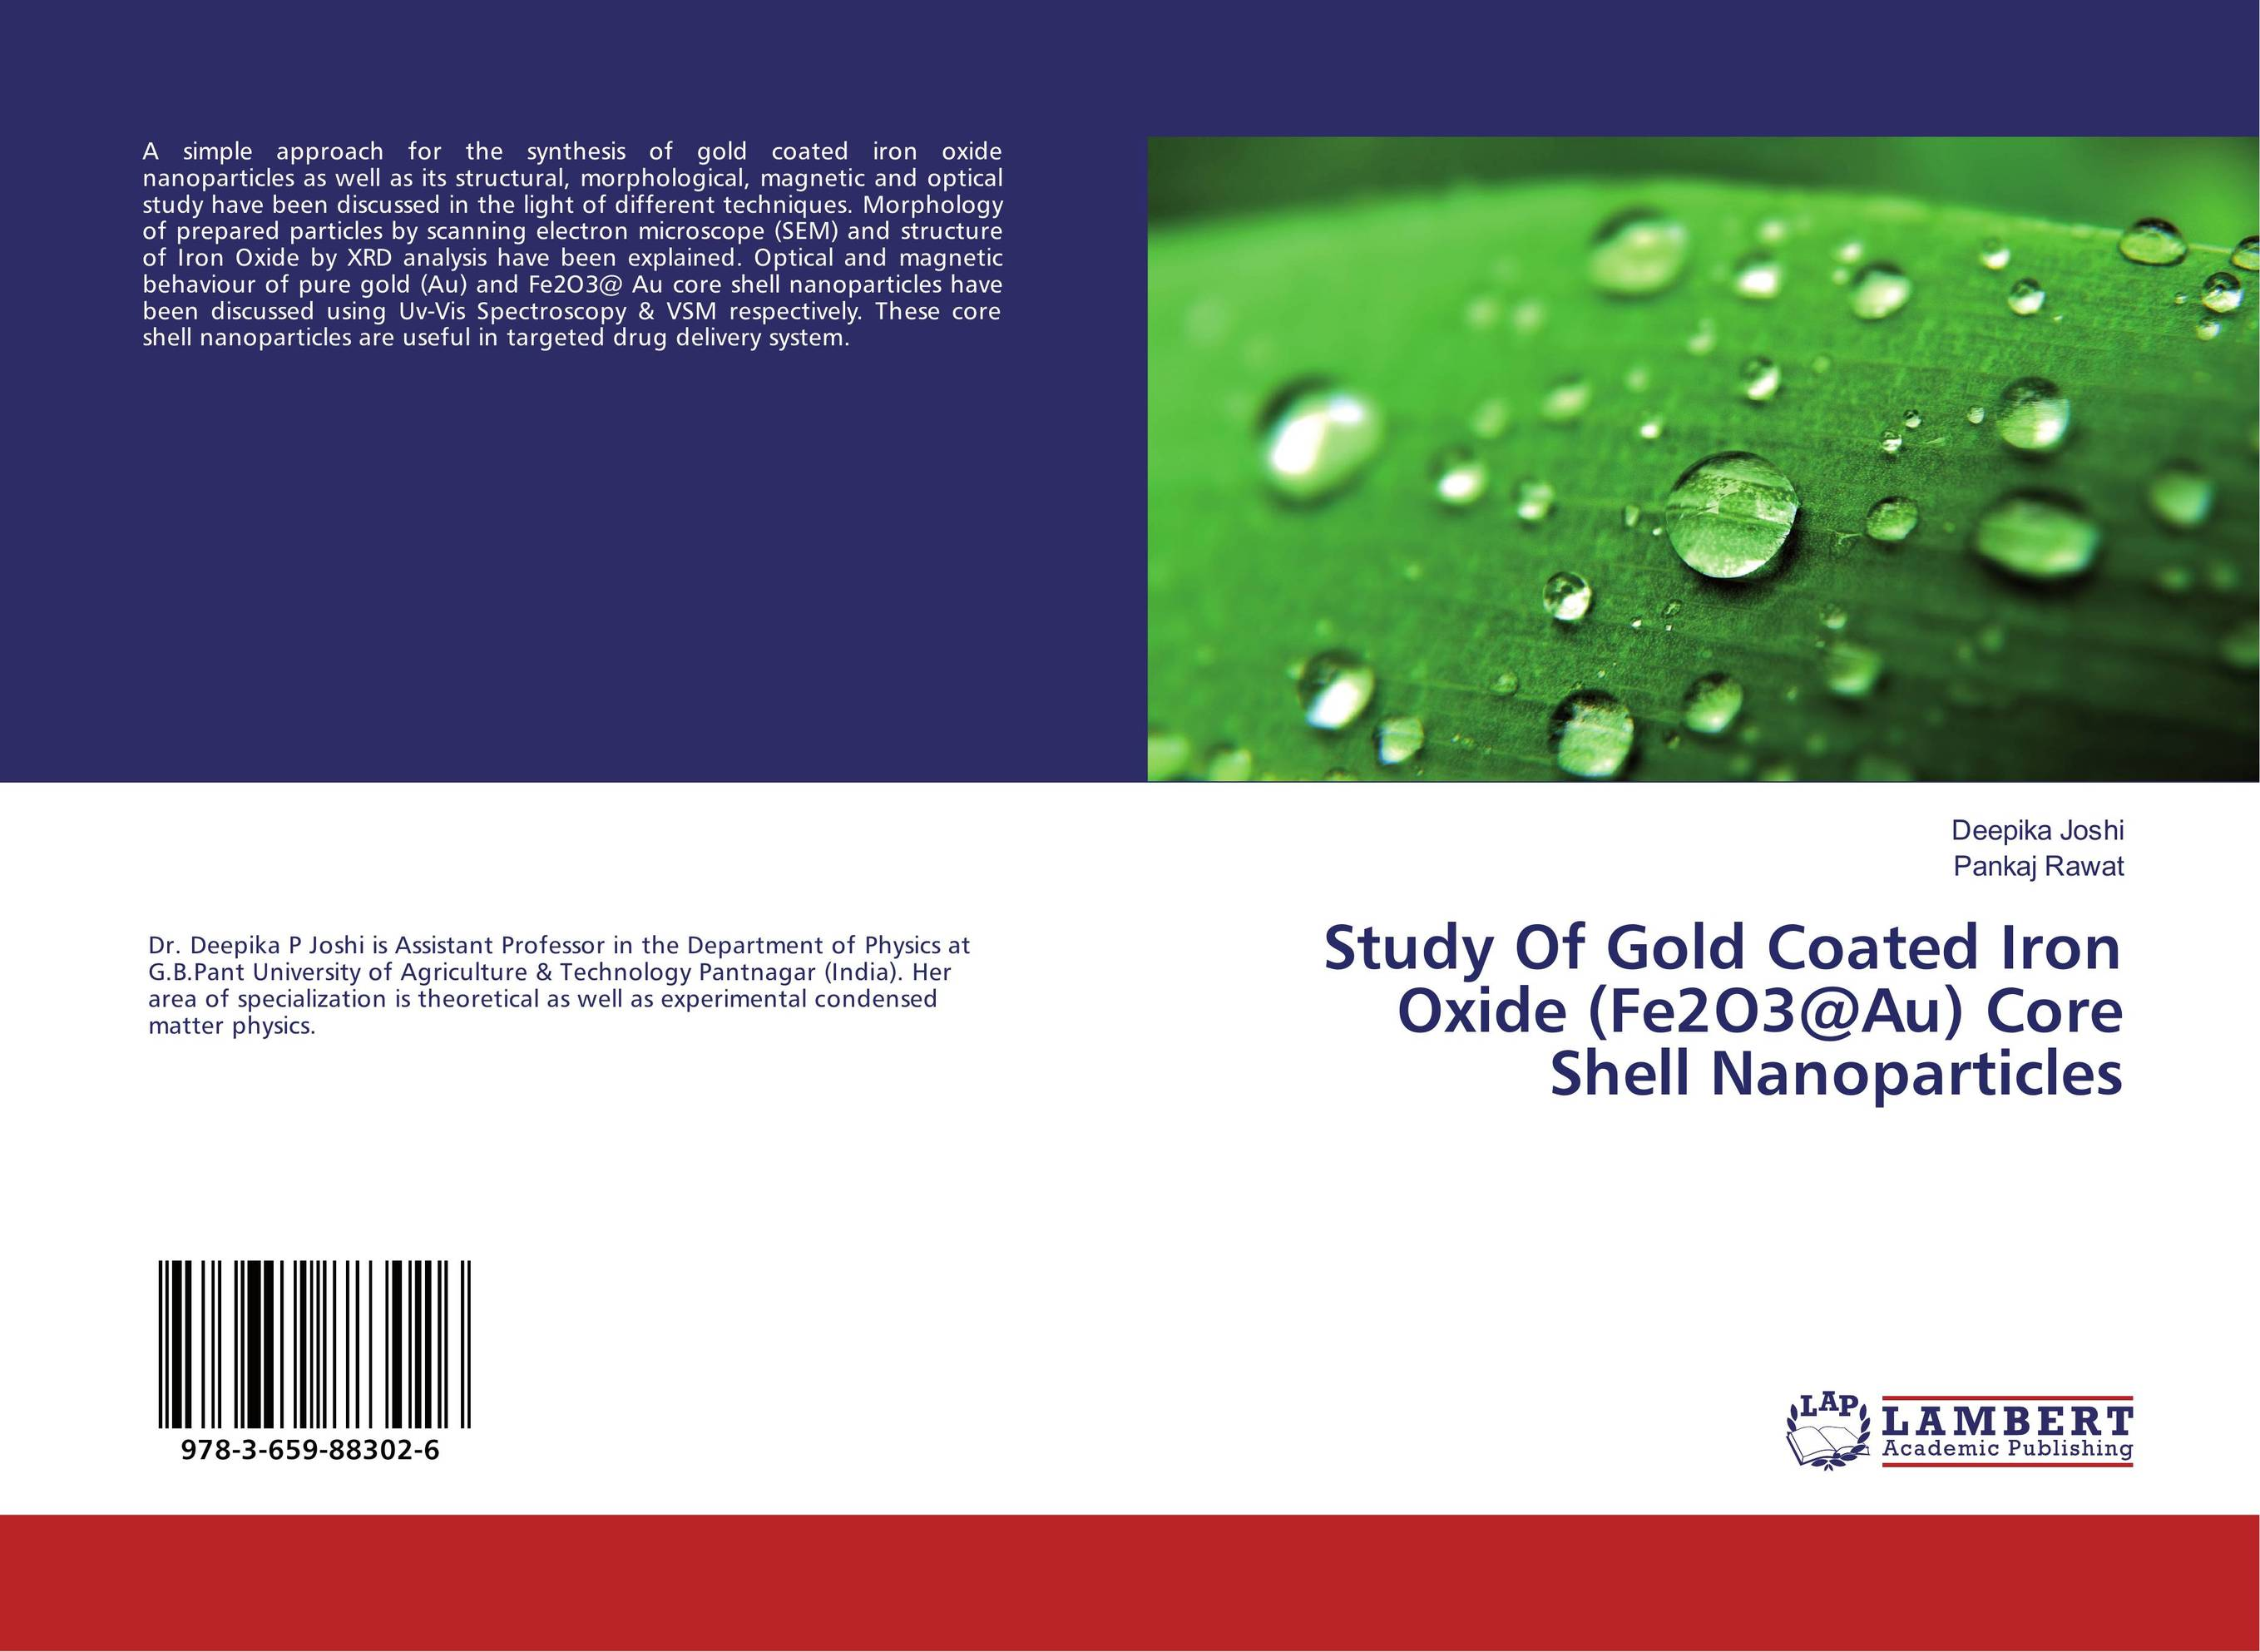 Study Of Gold Coated Iron Oxide (Fe2O3@Au) Core Shell Nanoparticles starch capped gold nanoparticles for catechol biosensor